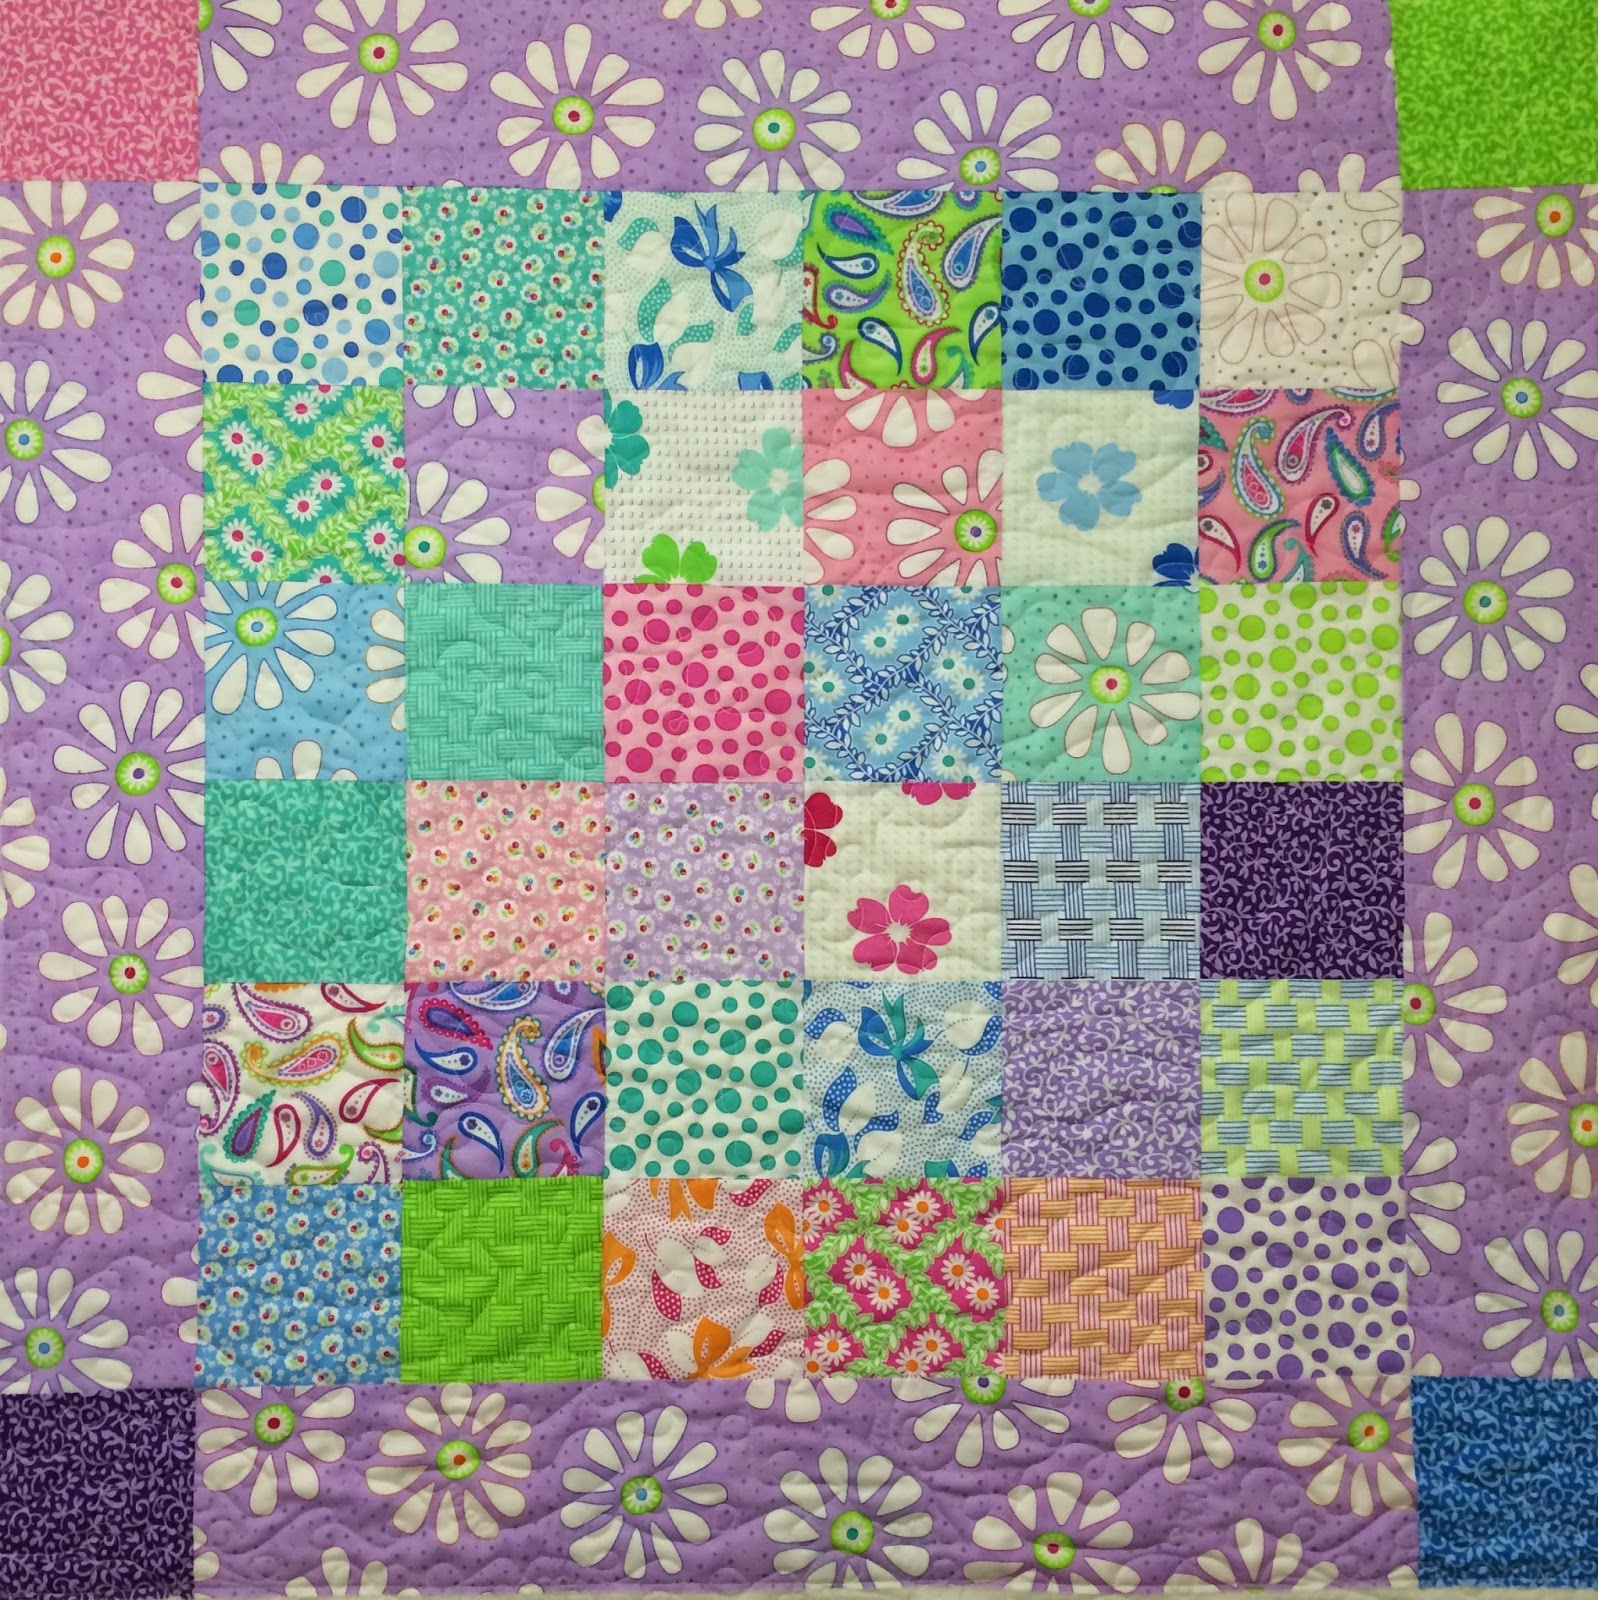 Mary Derryberry's Baby Quilt